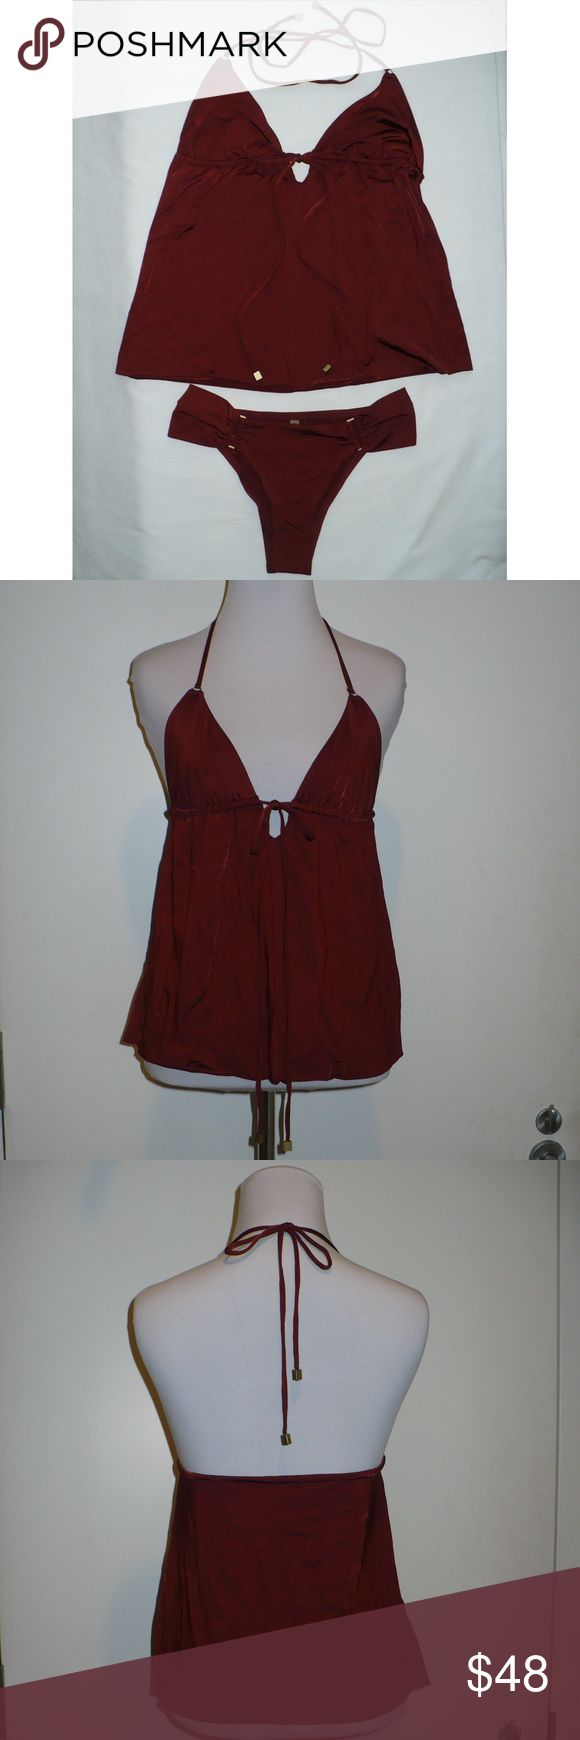 Vitamin A Bronze-tone Hardware Rust Brown Tankini NOT USED, Irregular w/defects Guaranteed Authentic  Selling separates as one tankini Top Size S: MSRP $120 Bottom Size M: MSRP $99 MSRP (total): $219  Review all photos carefully as they are considered part of the Item Description Discoloration at crotch from crotch protector sticker adhesive. Managed to wash almost all of the residue Very slight discoloration at left backside of bottom (hard to capture)   Material Content 91% Nylon 9% Lycra…